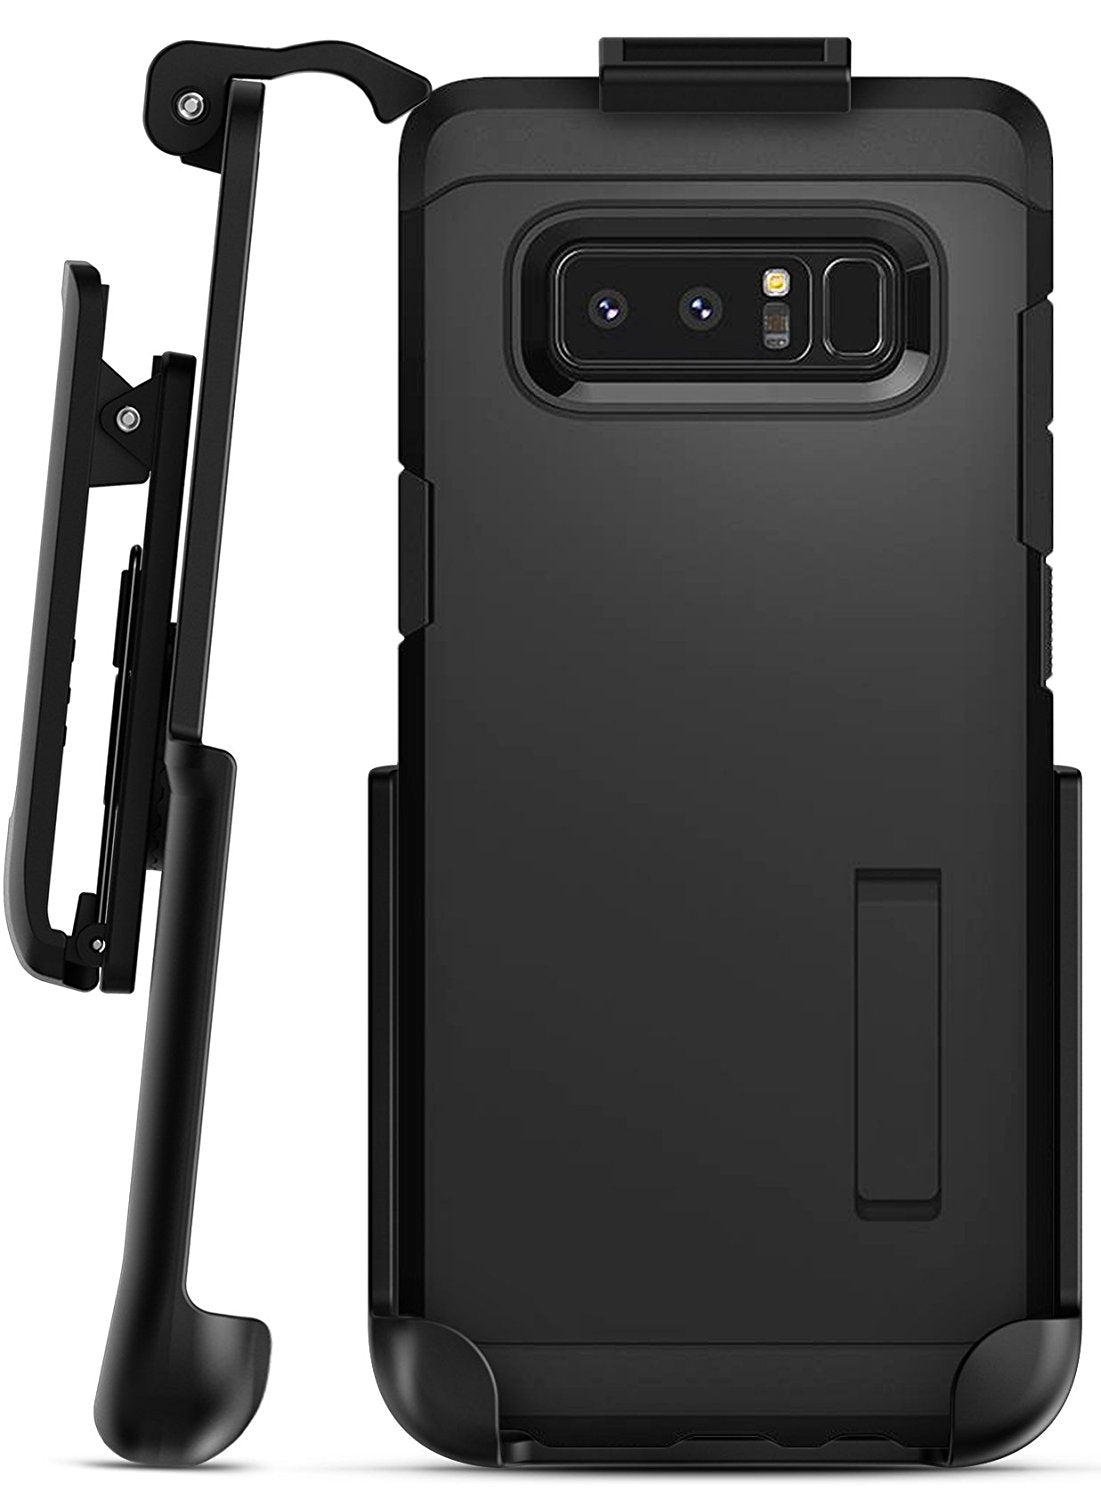 Belt Clip Holster for Spigen Tough Armor - Galaxy Note 8 (case not included) by Encased